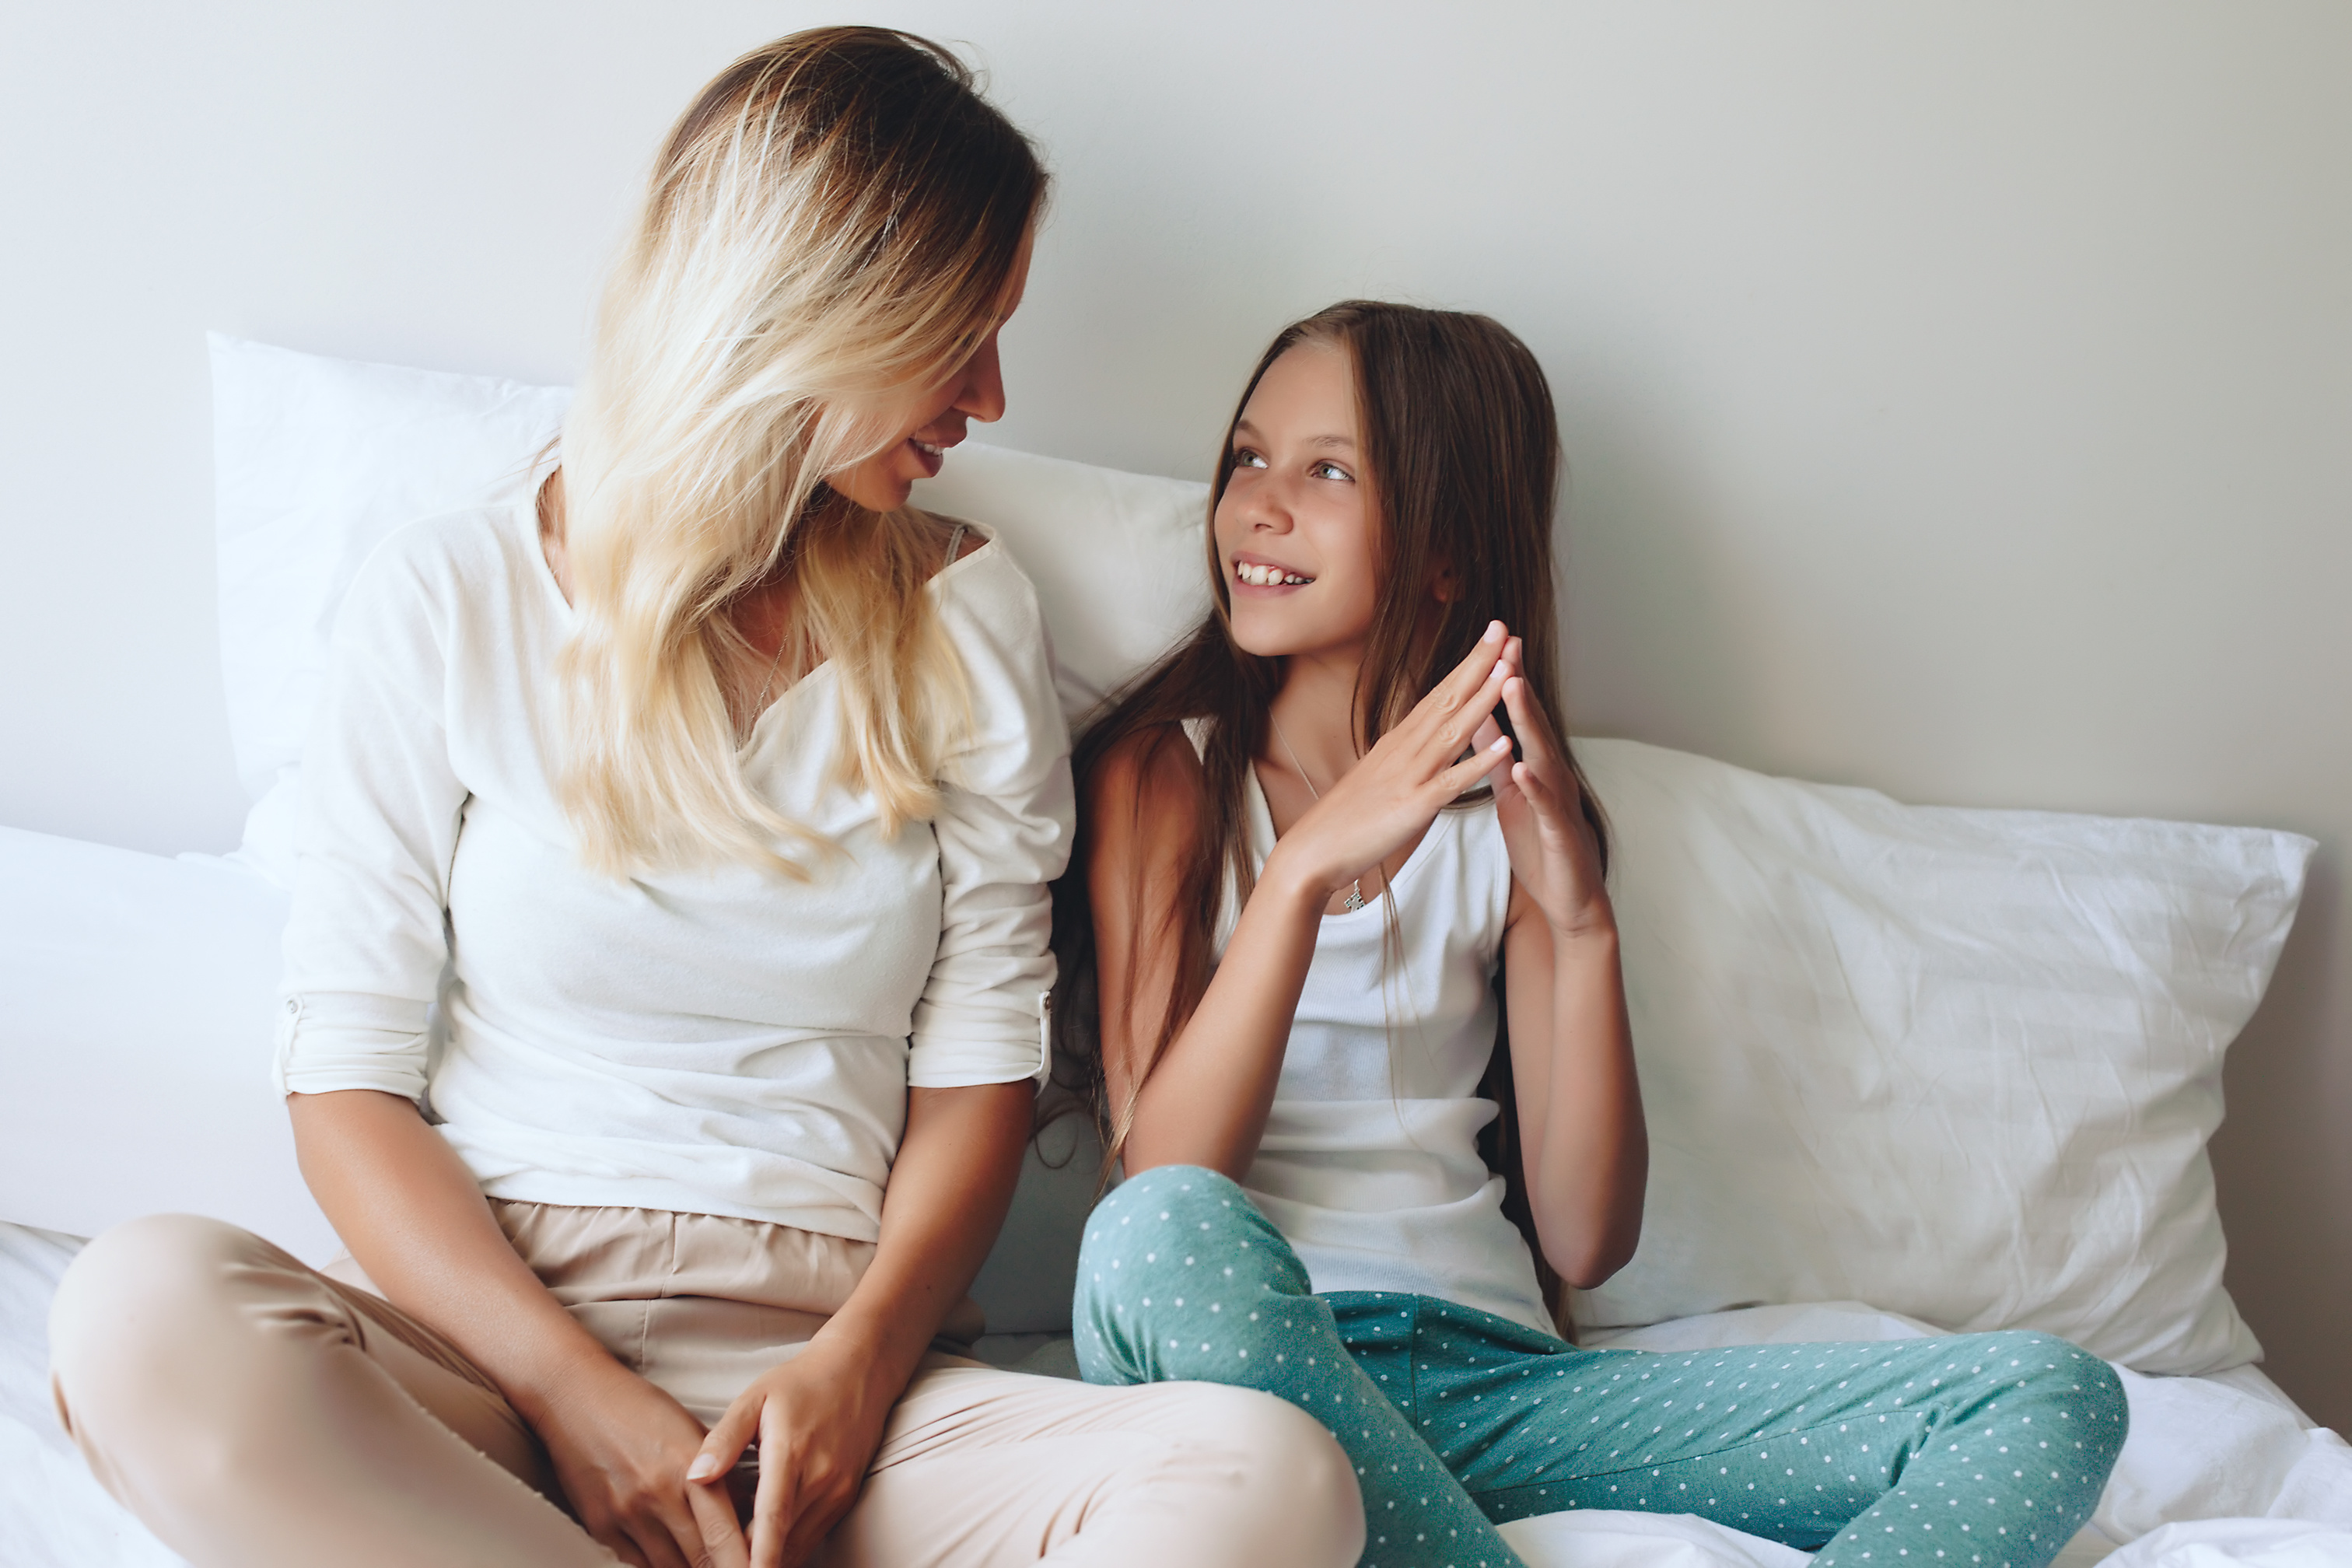 Are your feminine products making you sick? Let's have the discussion with our young daughters about options.